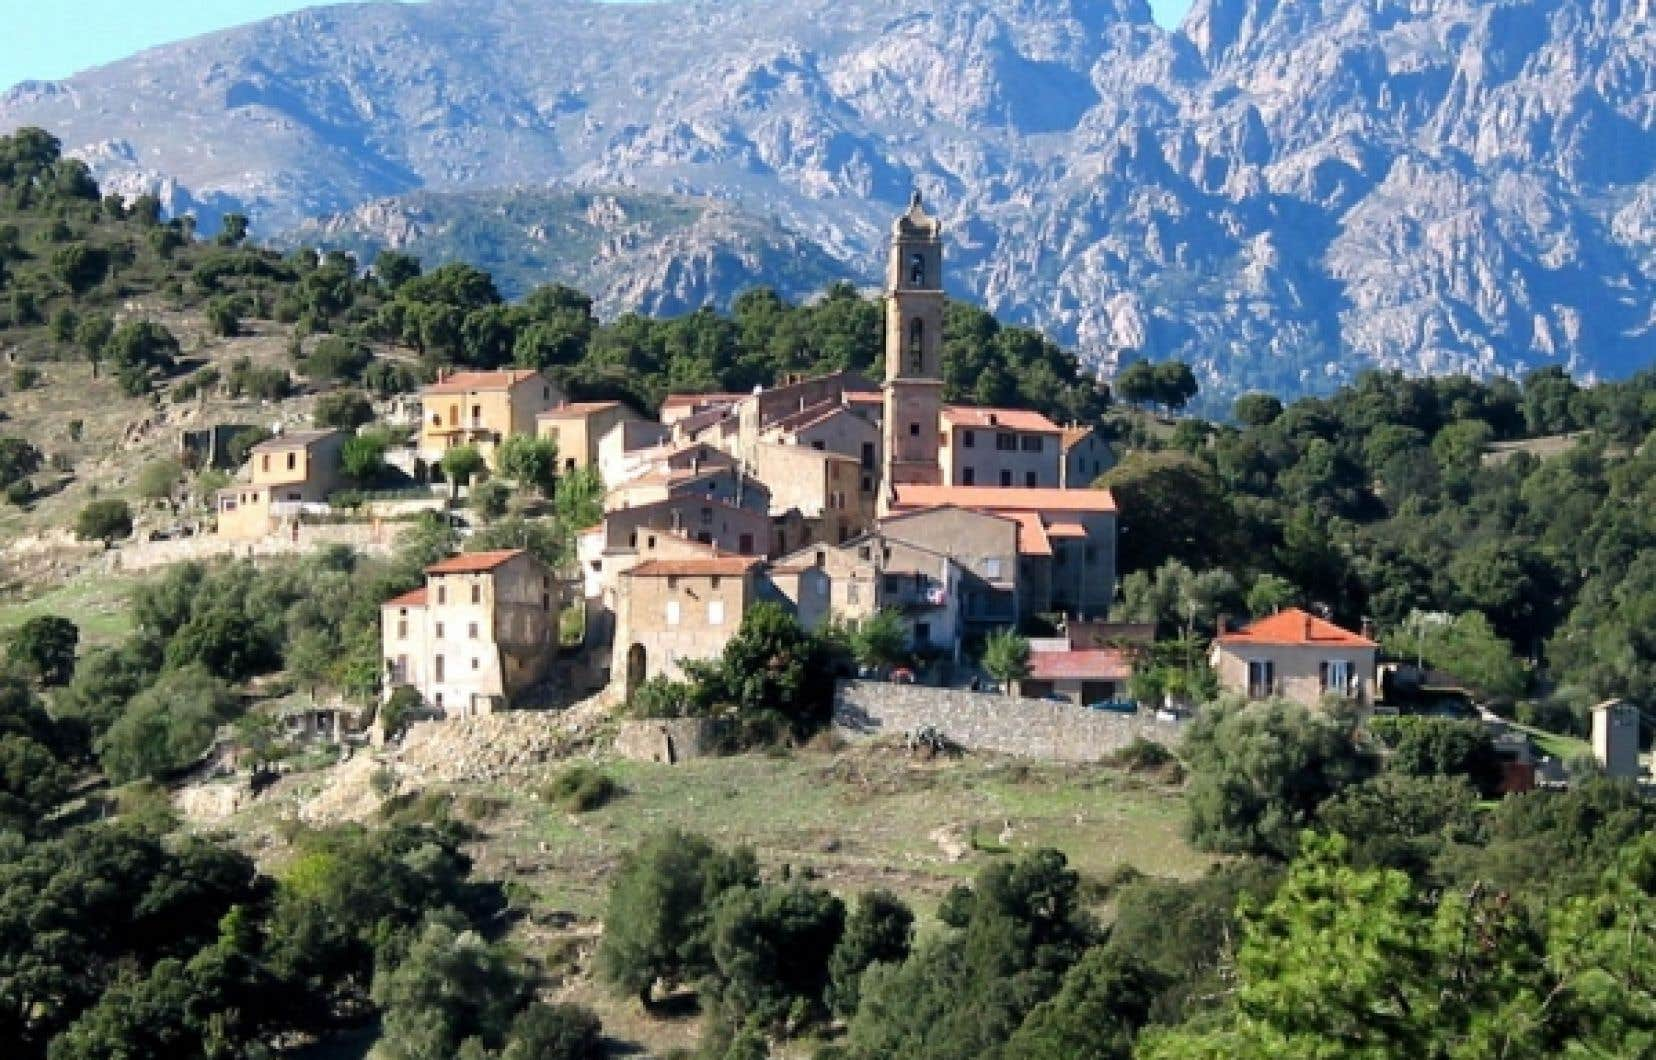 Le village de Soveria, en Corse.